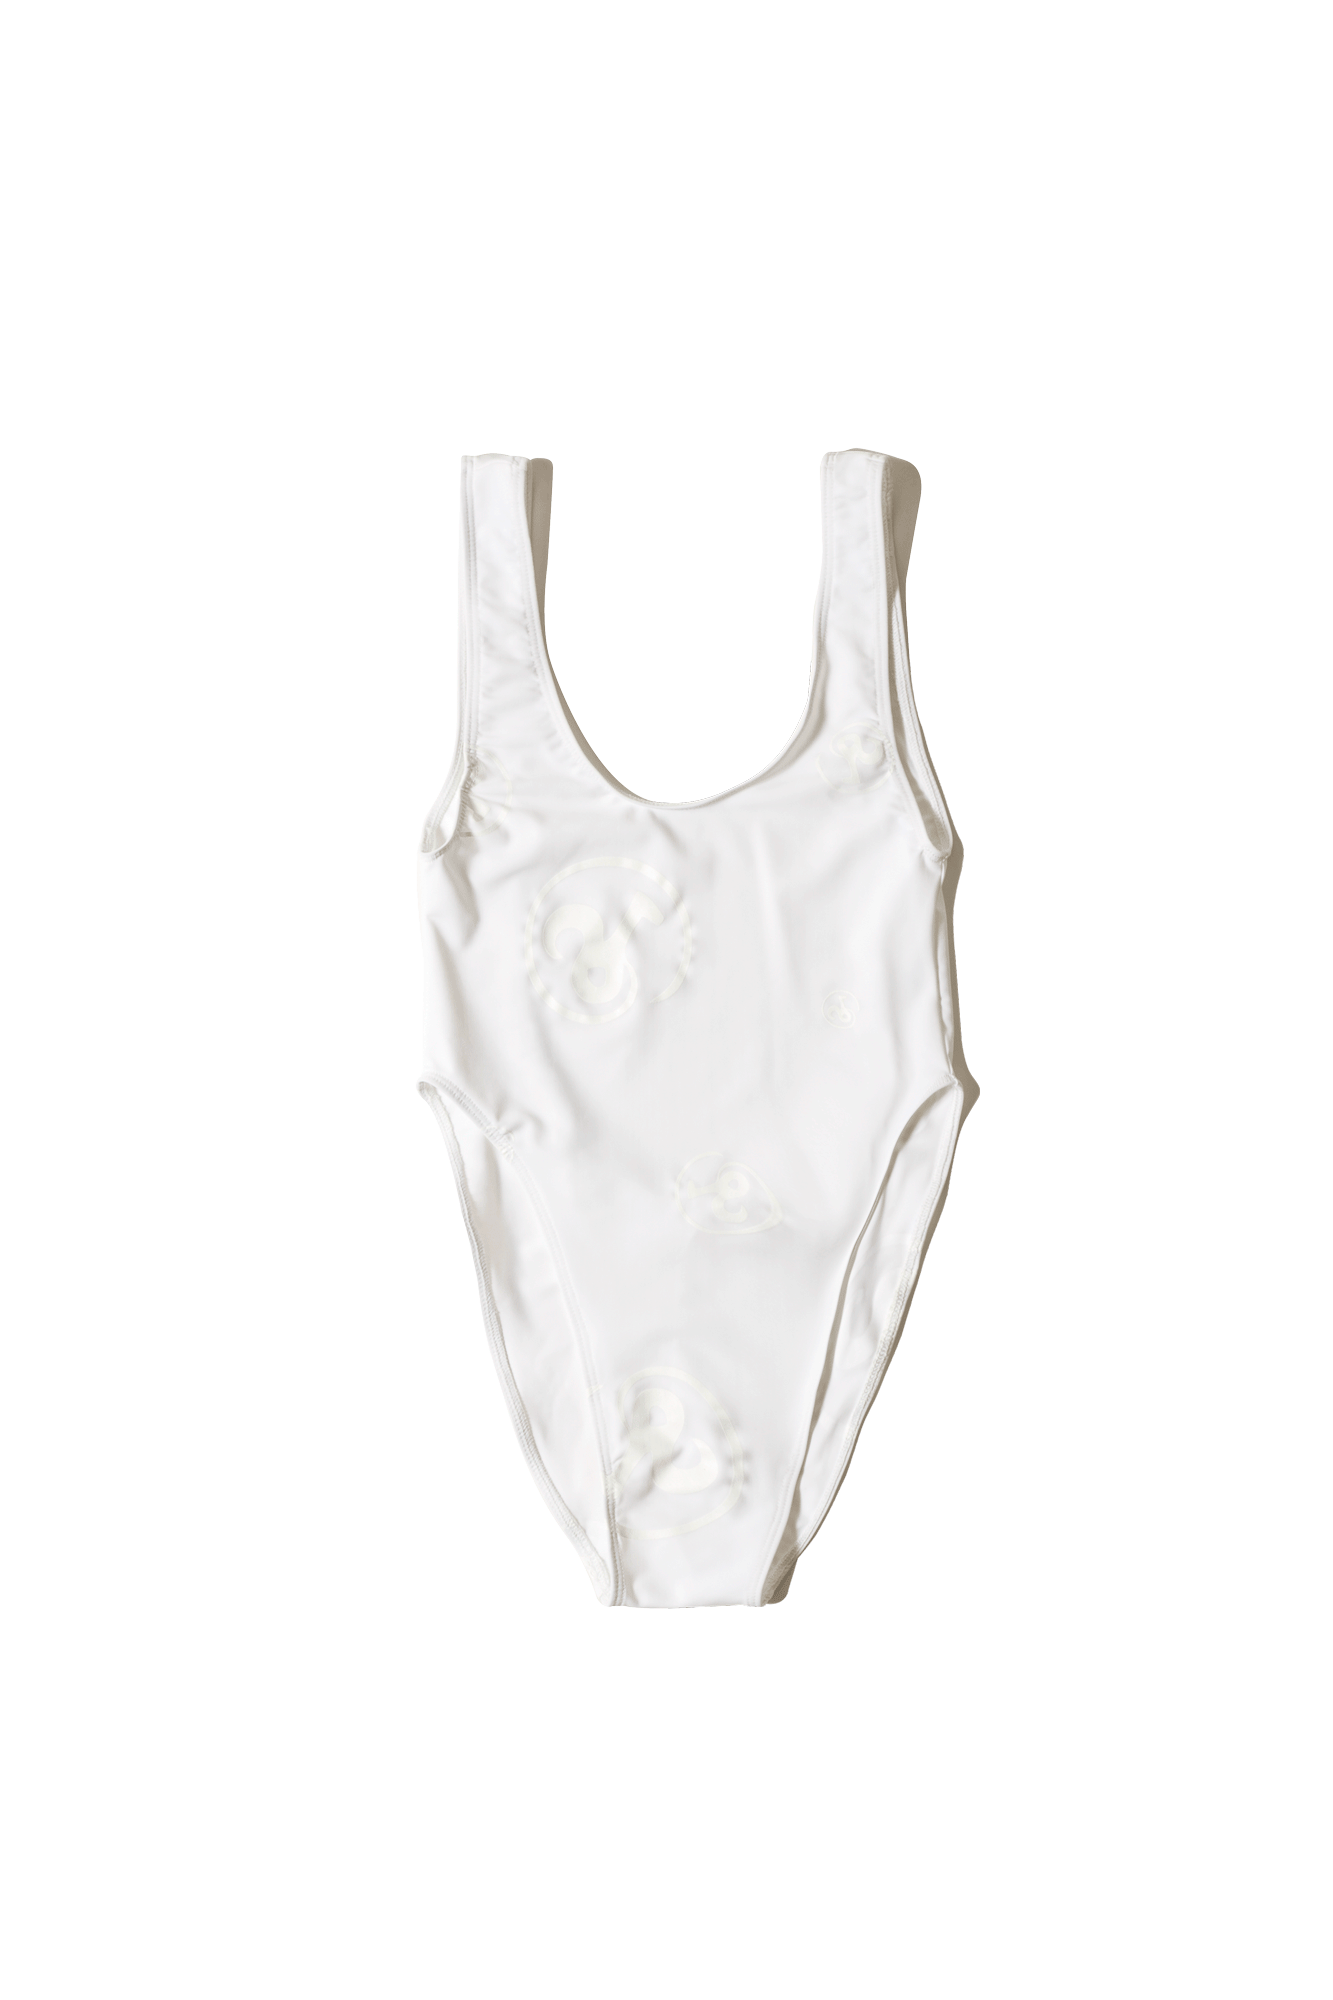 Richardson Mag Costumi da bagno One Piece Swimsuit Bianco 6211120000#000#WHITE#S - One Block Down